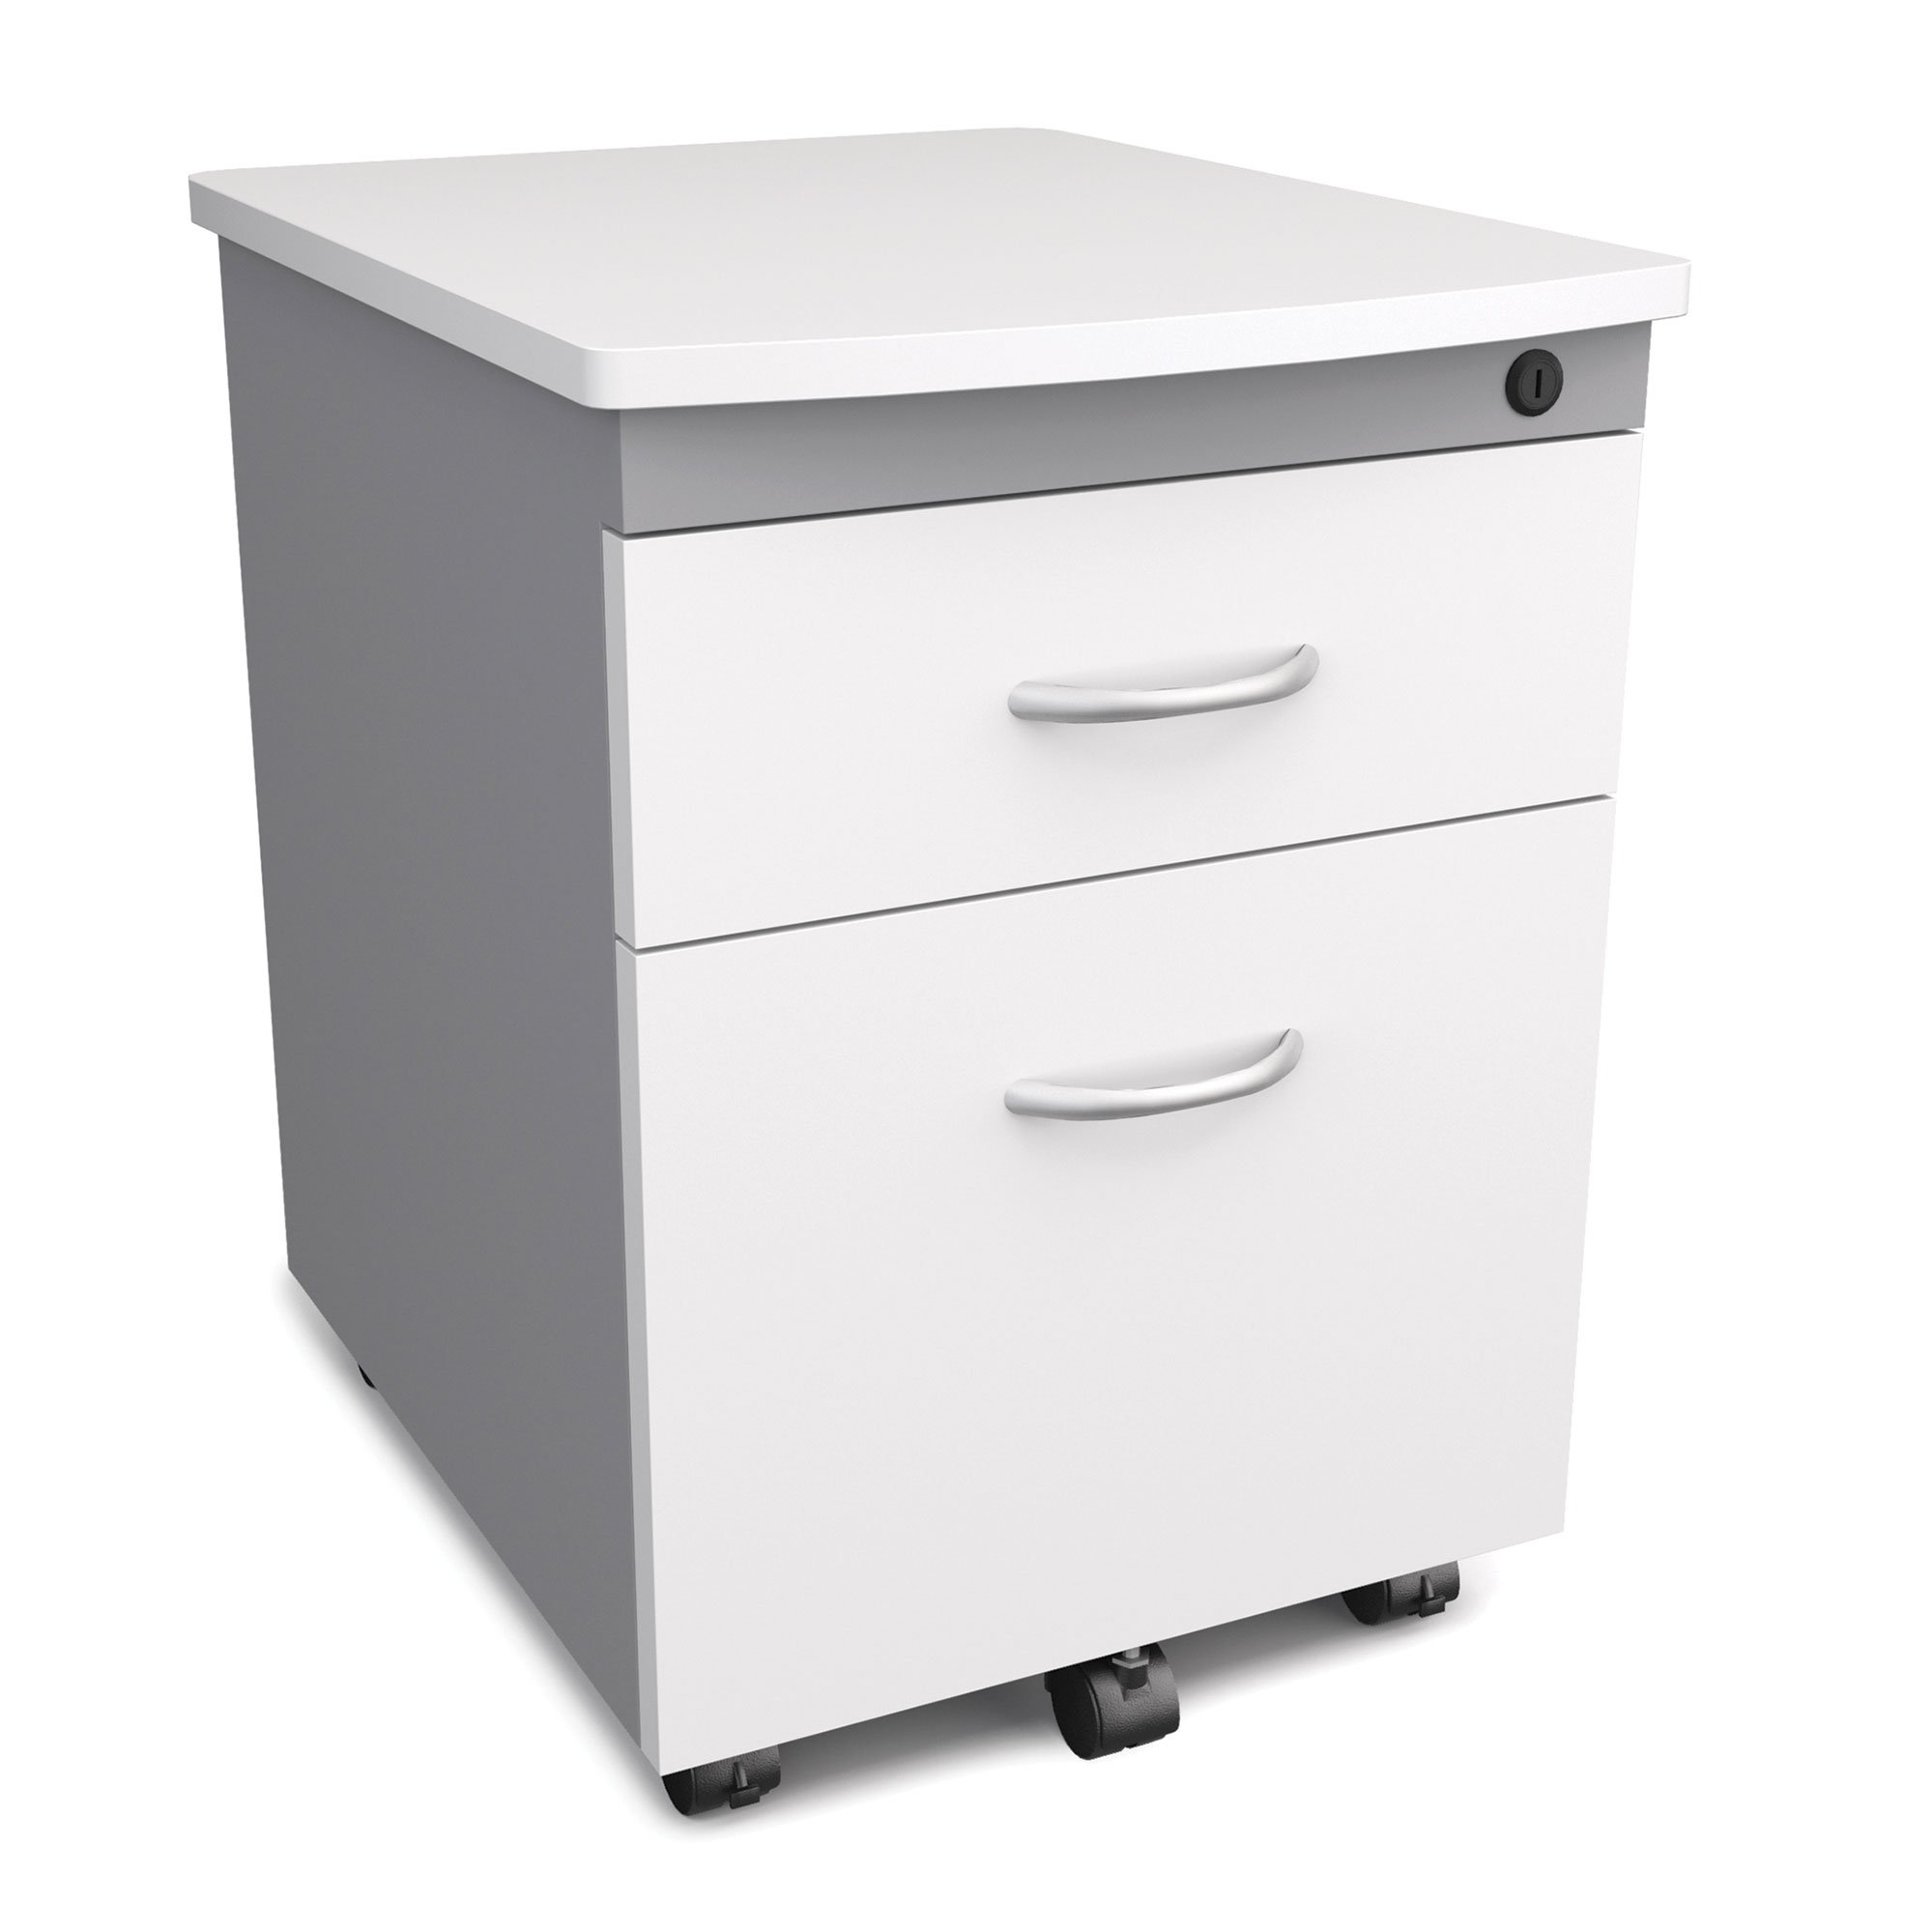 Mobile Pedestal 2-Drawer File/Box Cabinet, White by OFM (Image #1)